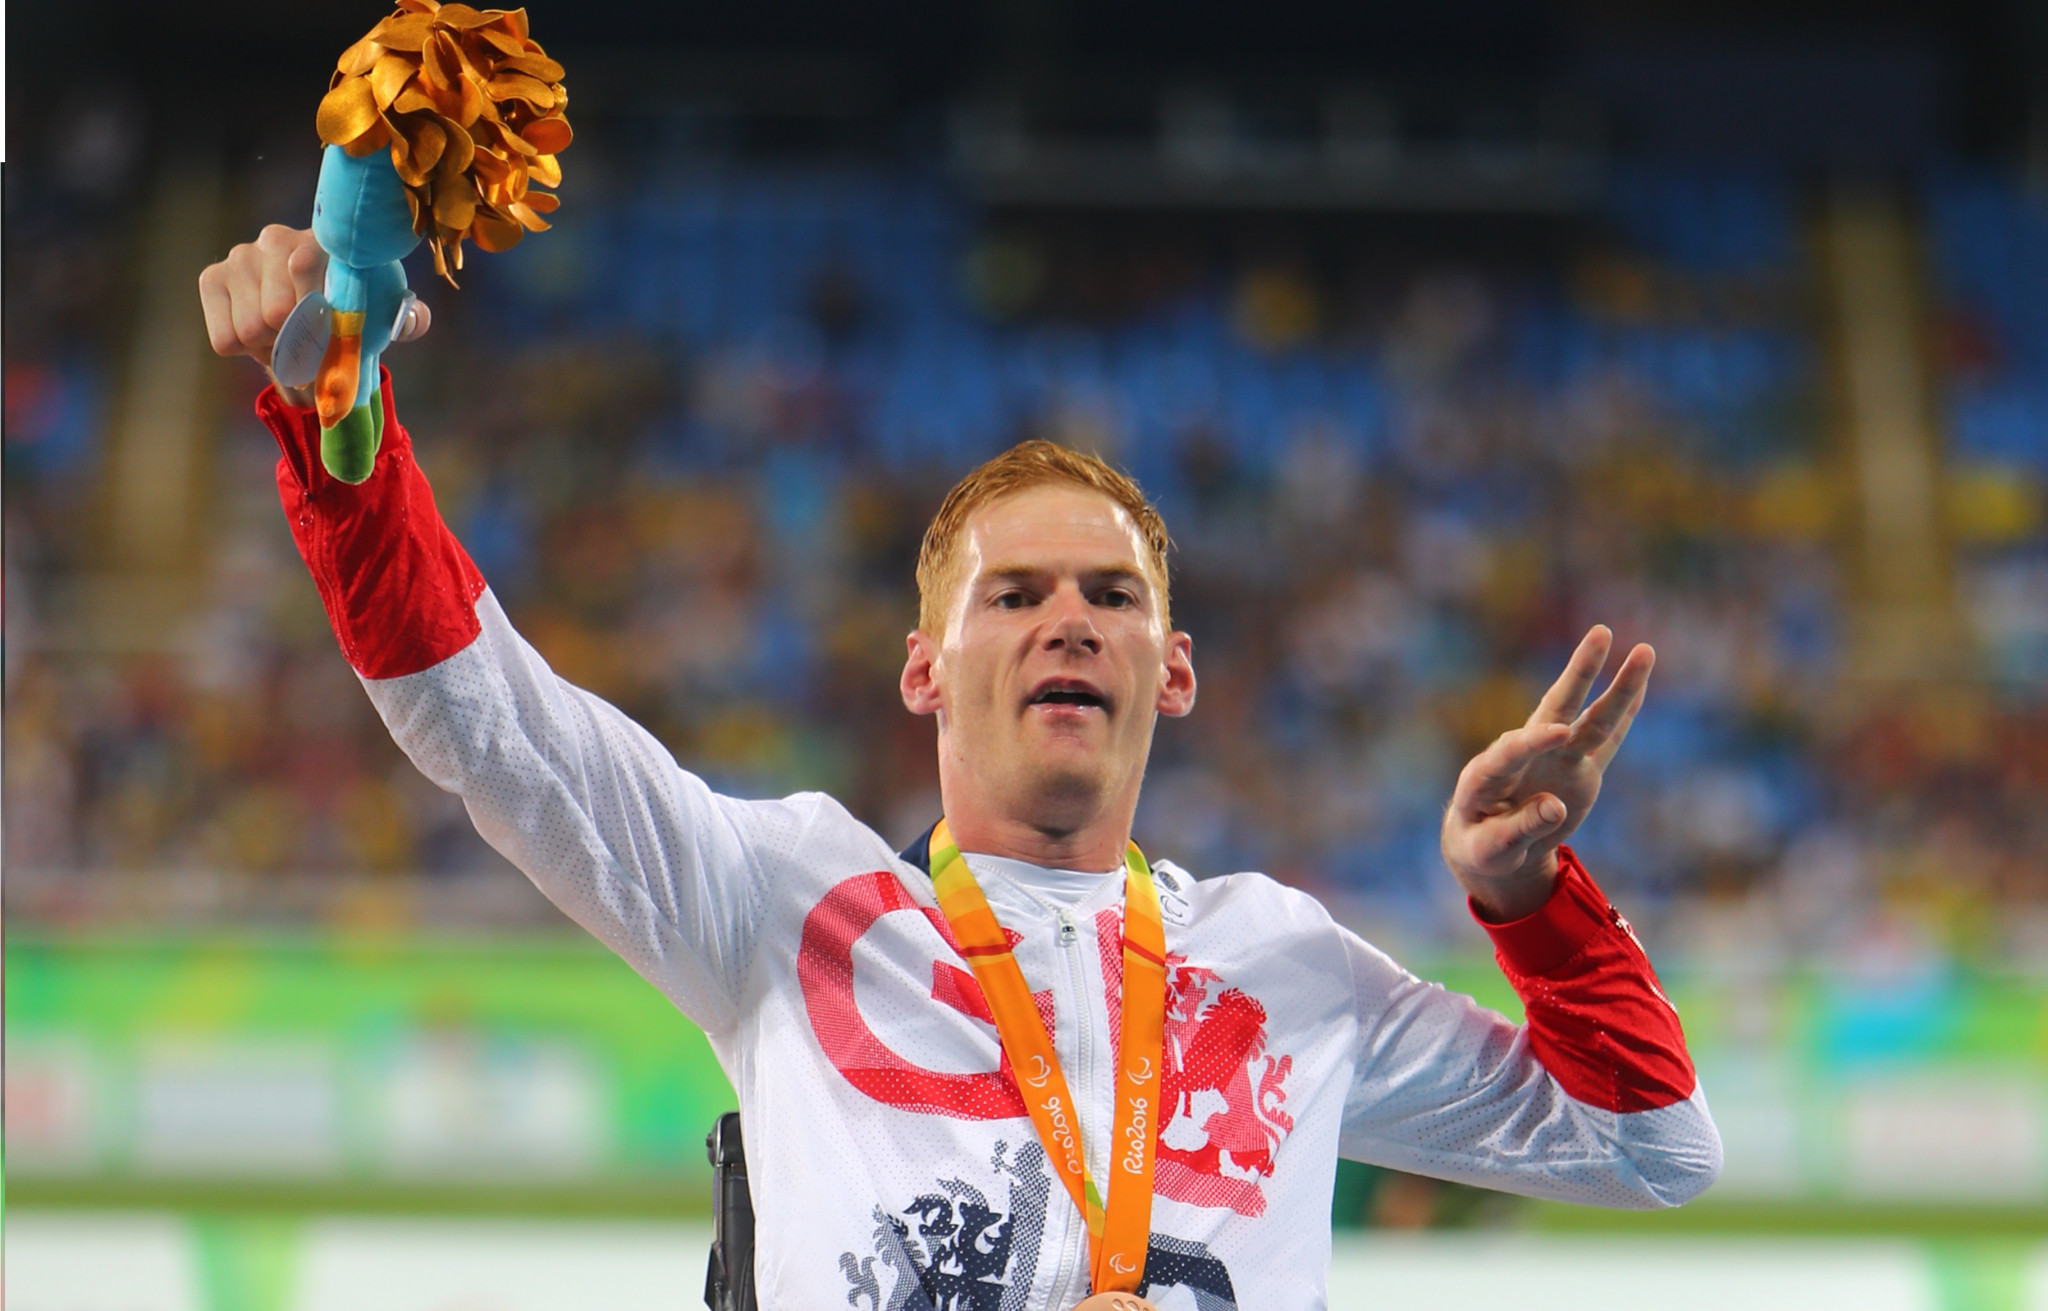 British Paralympian Stephen Miller has criticised the organisers of the Tokyo 2020 Olympic and Paralympic Games ©Getty Images